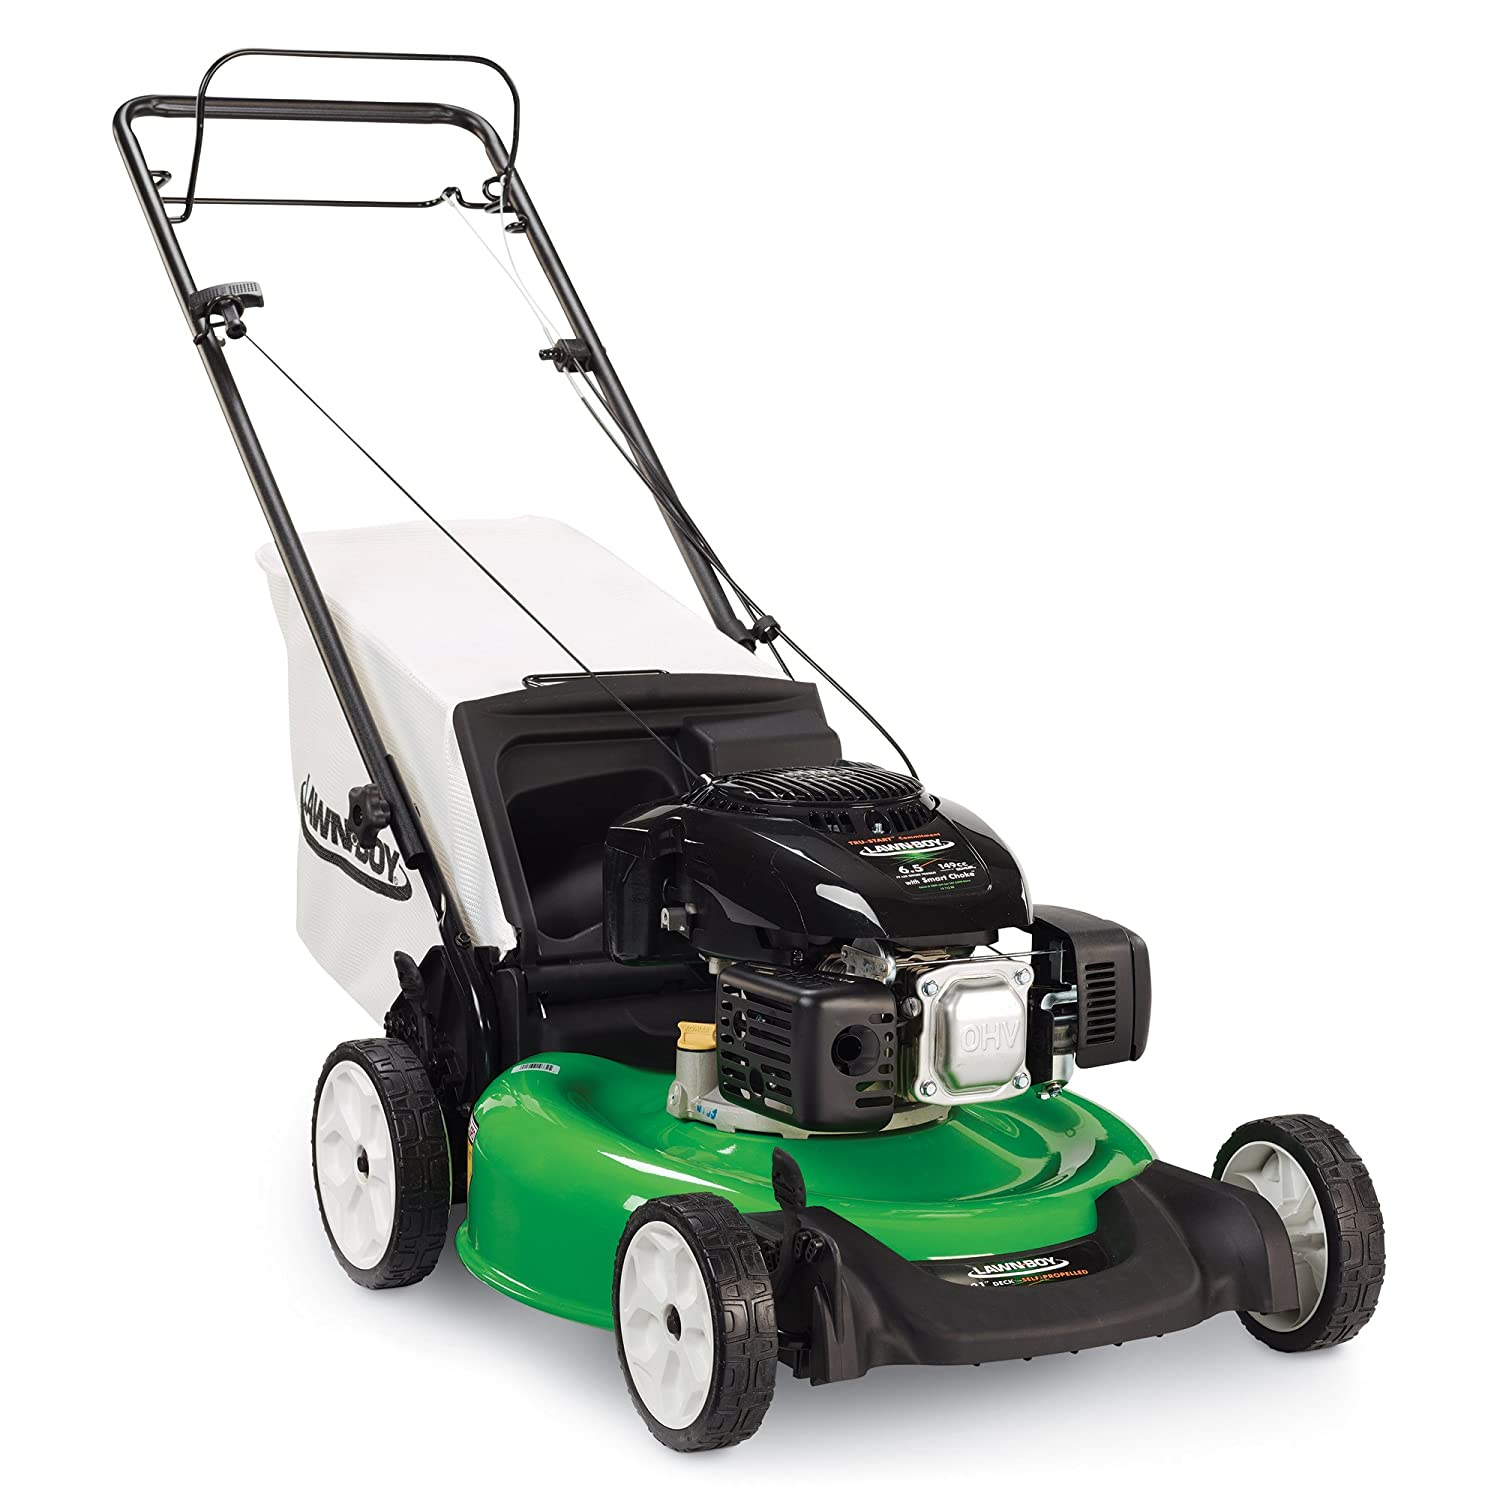 Amazon Lawn Boy 21 Inch 6 5 Gross Torque Kohler XTX OHV